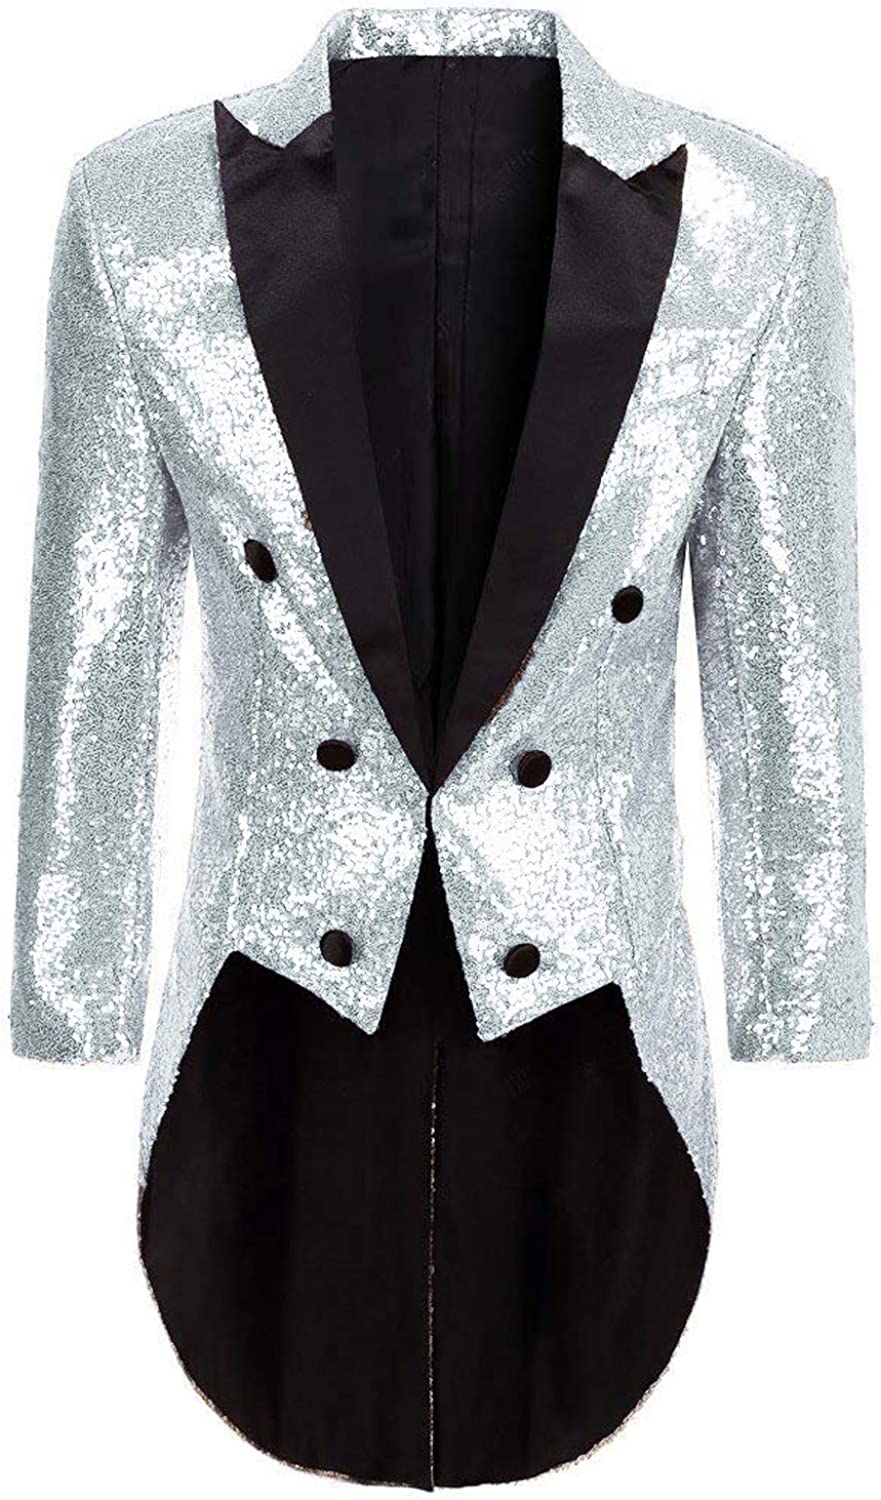 Limited price DGMJ Sequins Arlington Mall Tailcoat Circus Costume for Men Dinne Stylish Party